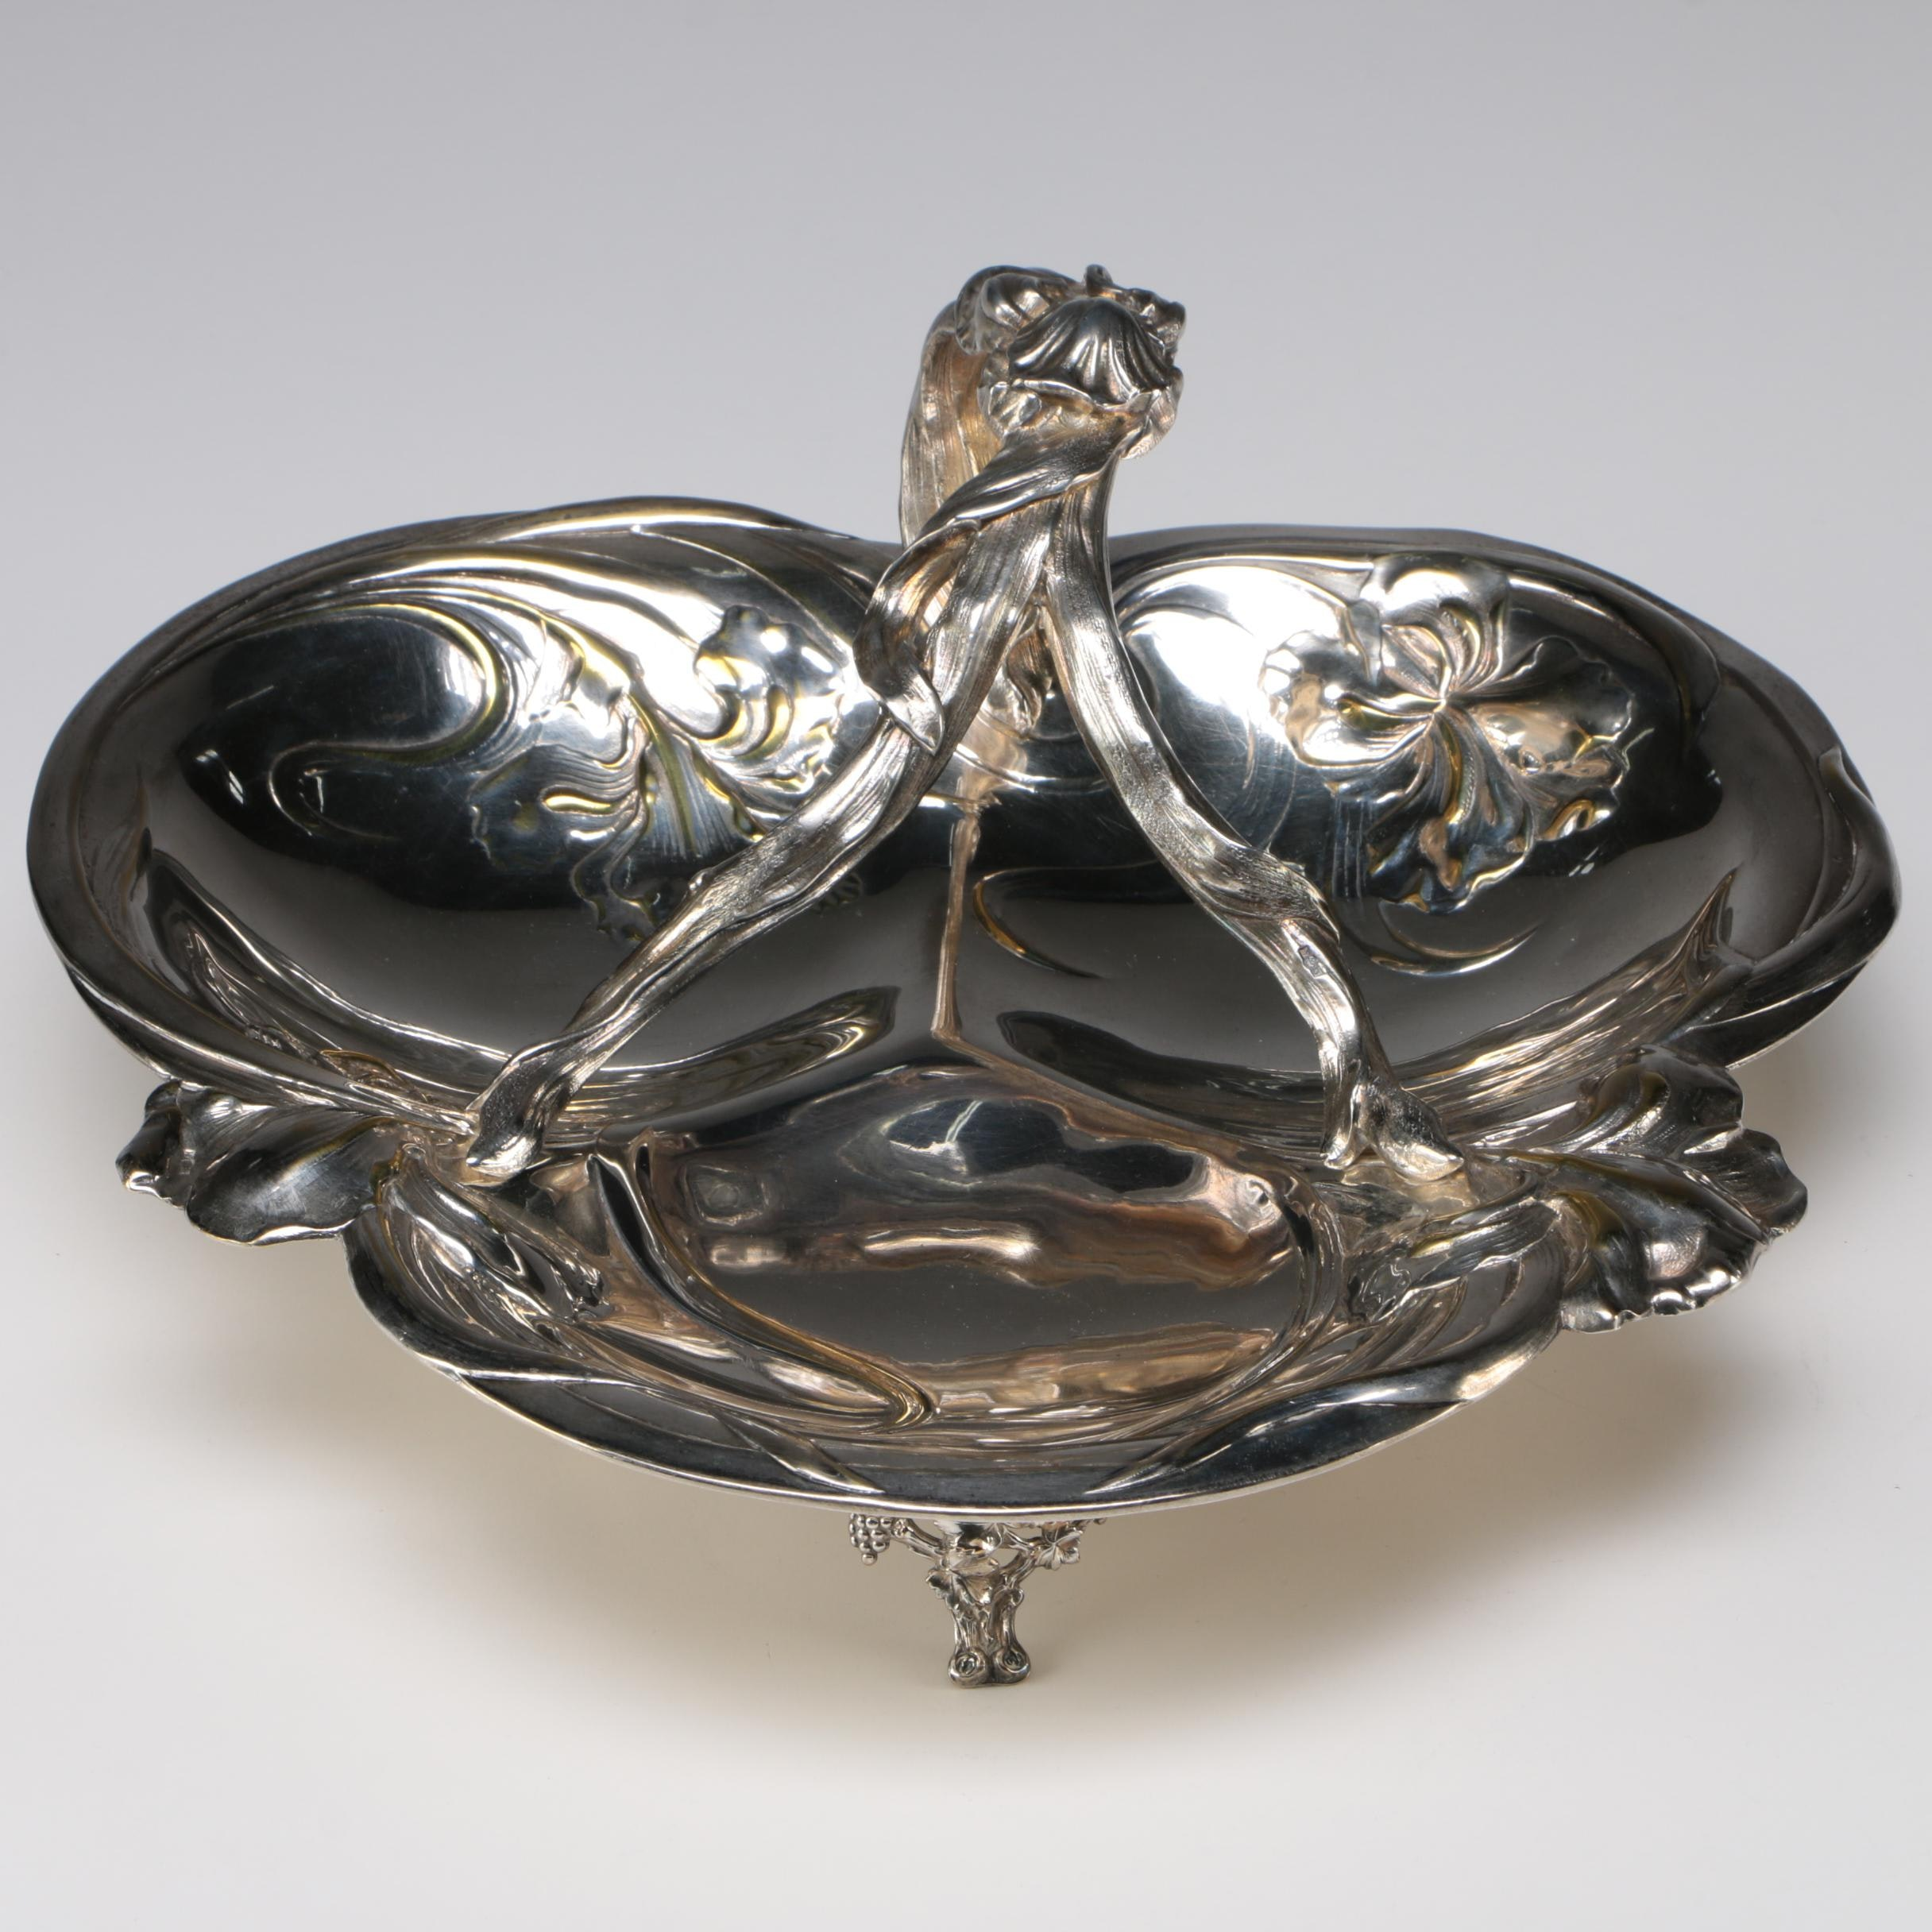 Victor Saglier French Art Nouveau Silver Plate Iris Serving Bowl, Late 19th